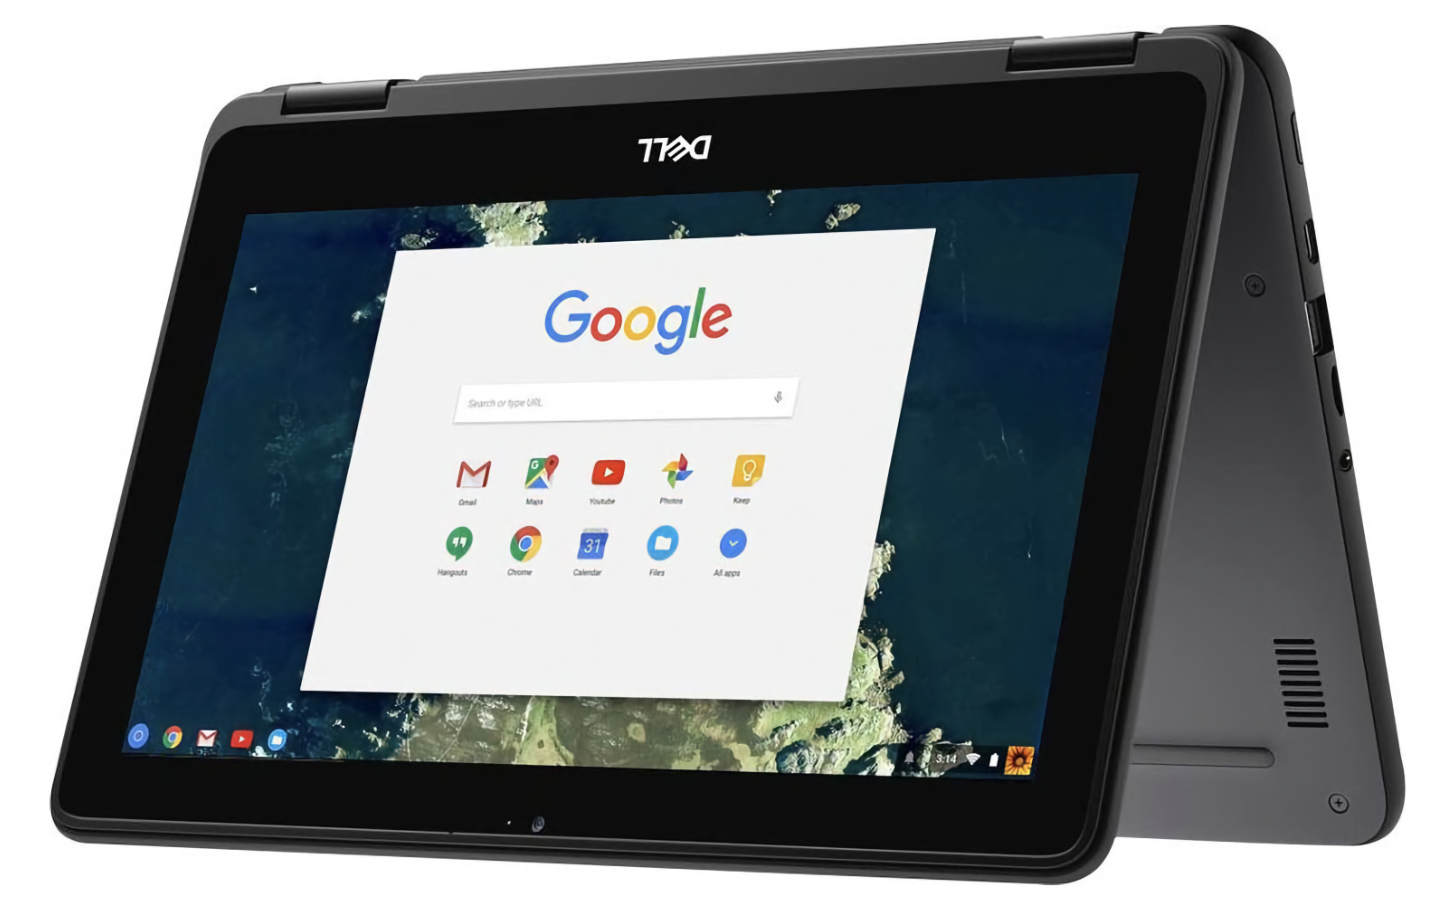 Today only, save $100 on a Dell 2-in-1 11.6″ Chromebook ($169) at Best Buy